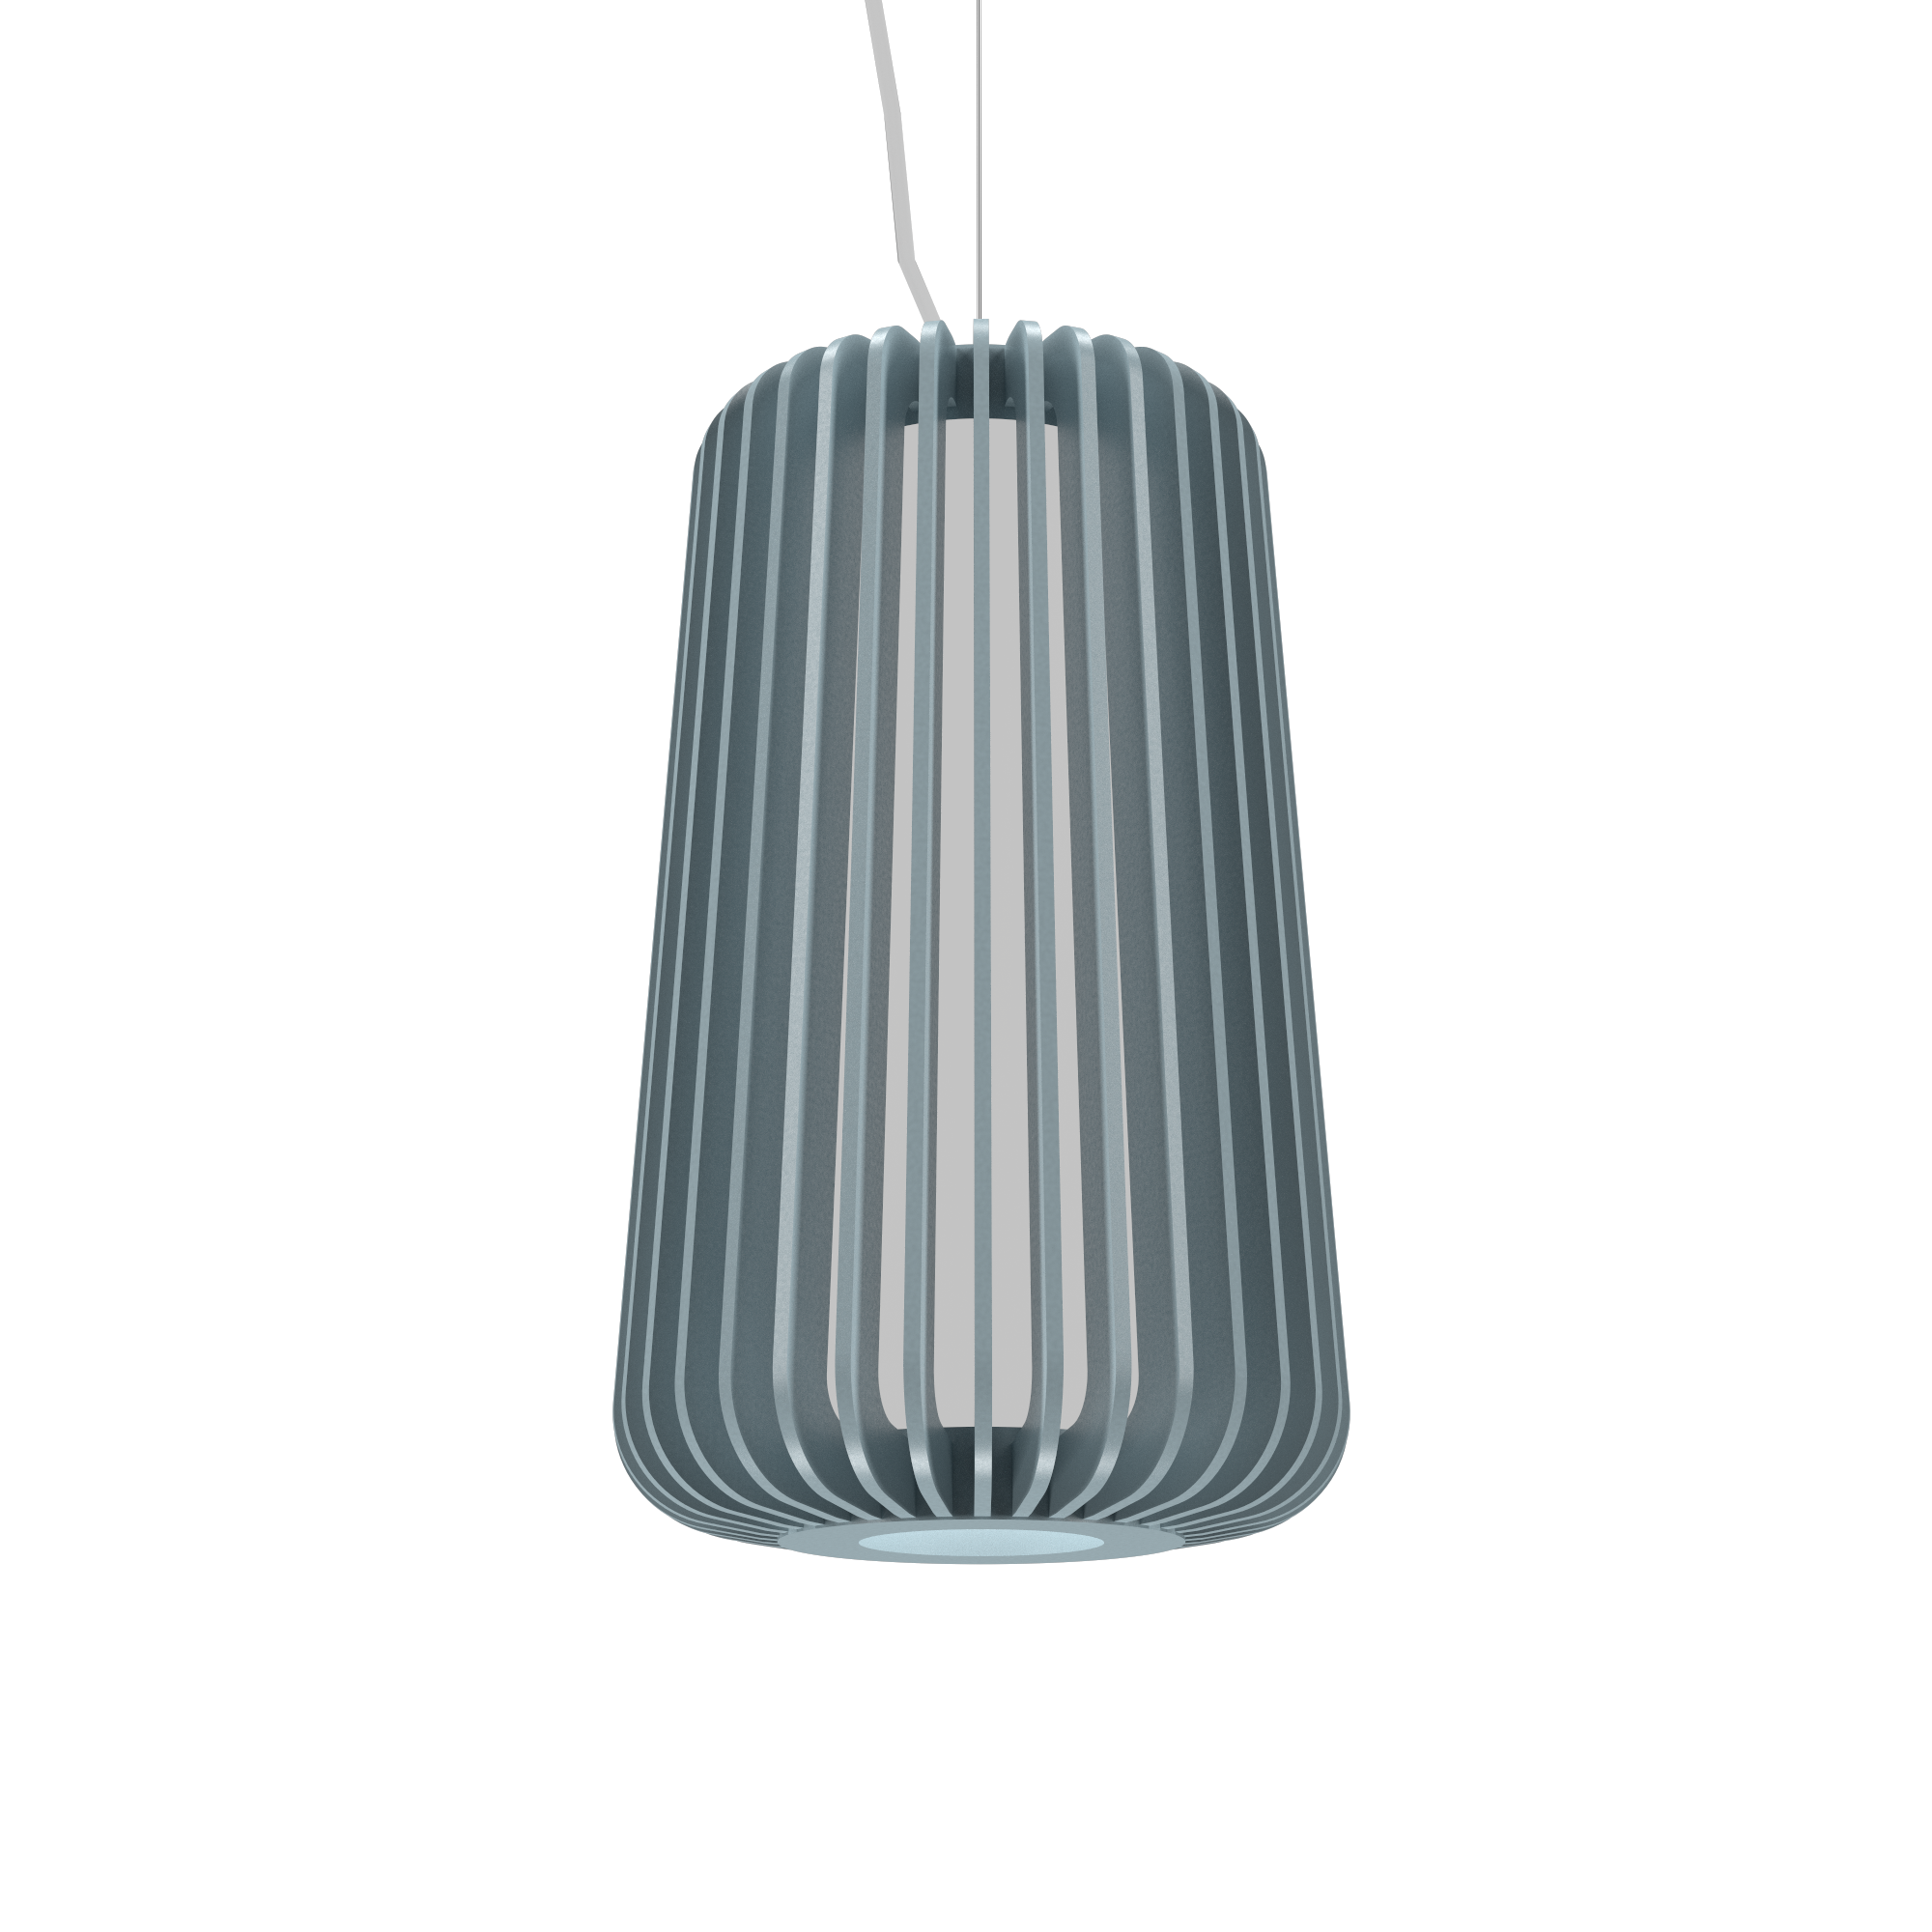 Pendant Lamp Accord Stecche Di Legno 1427 - Stecche Di Legno Line Accord Lighting | Satin Blue